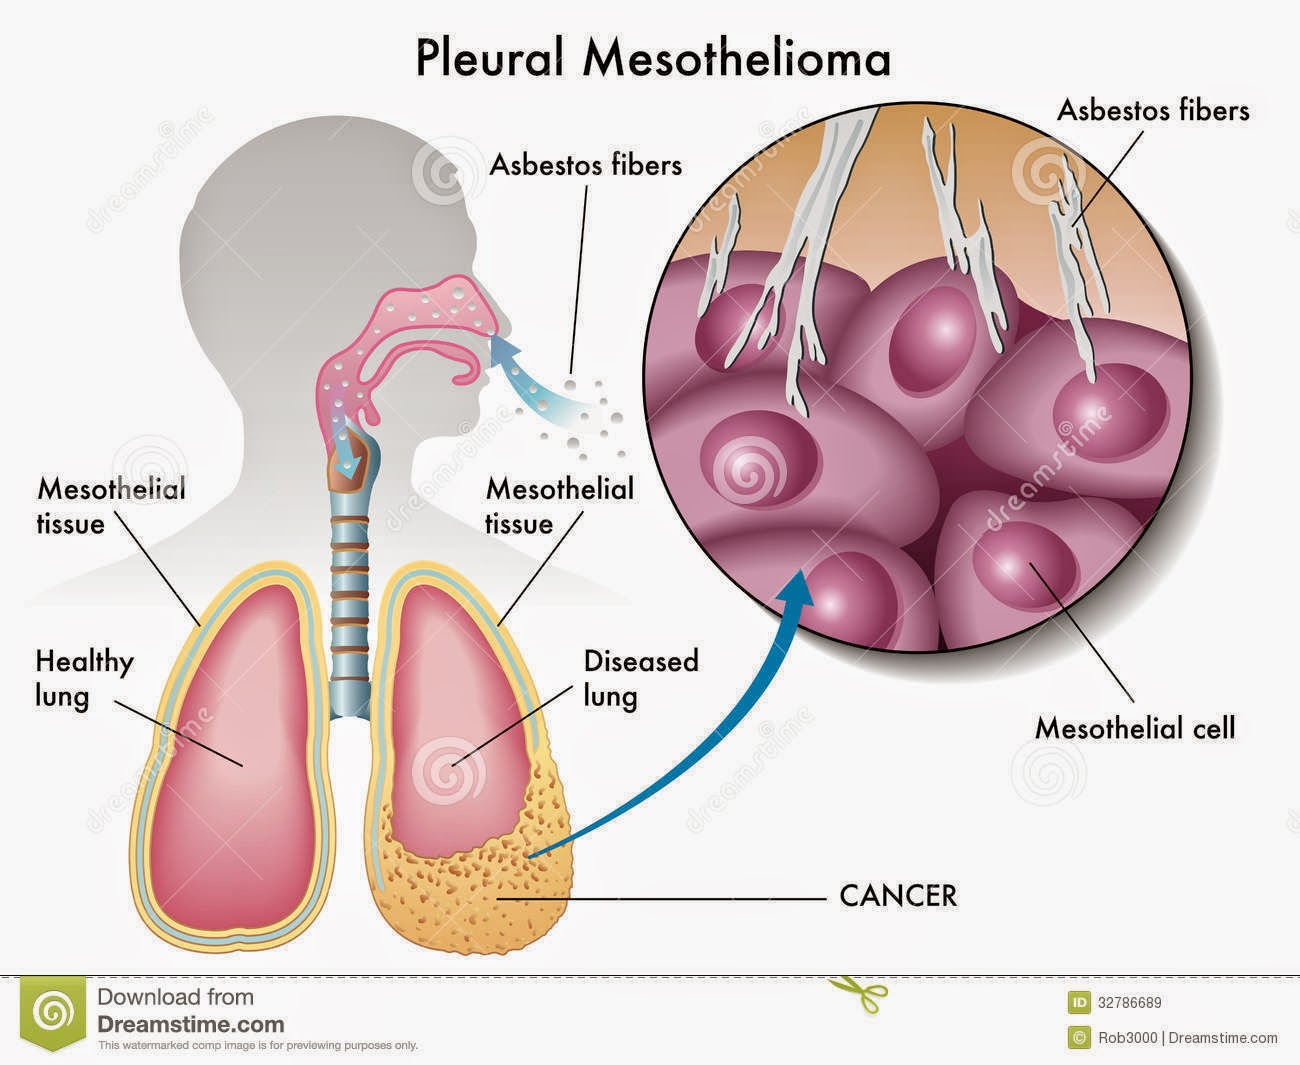 What is Malignant Pleural Mesothelioma